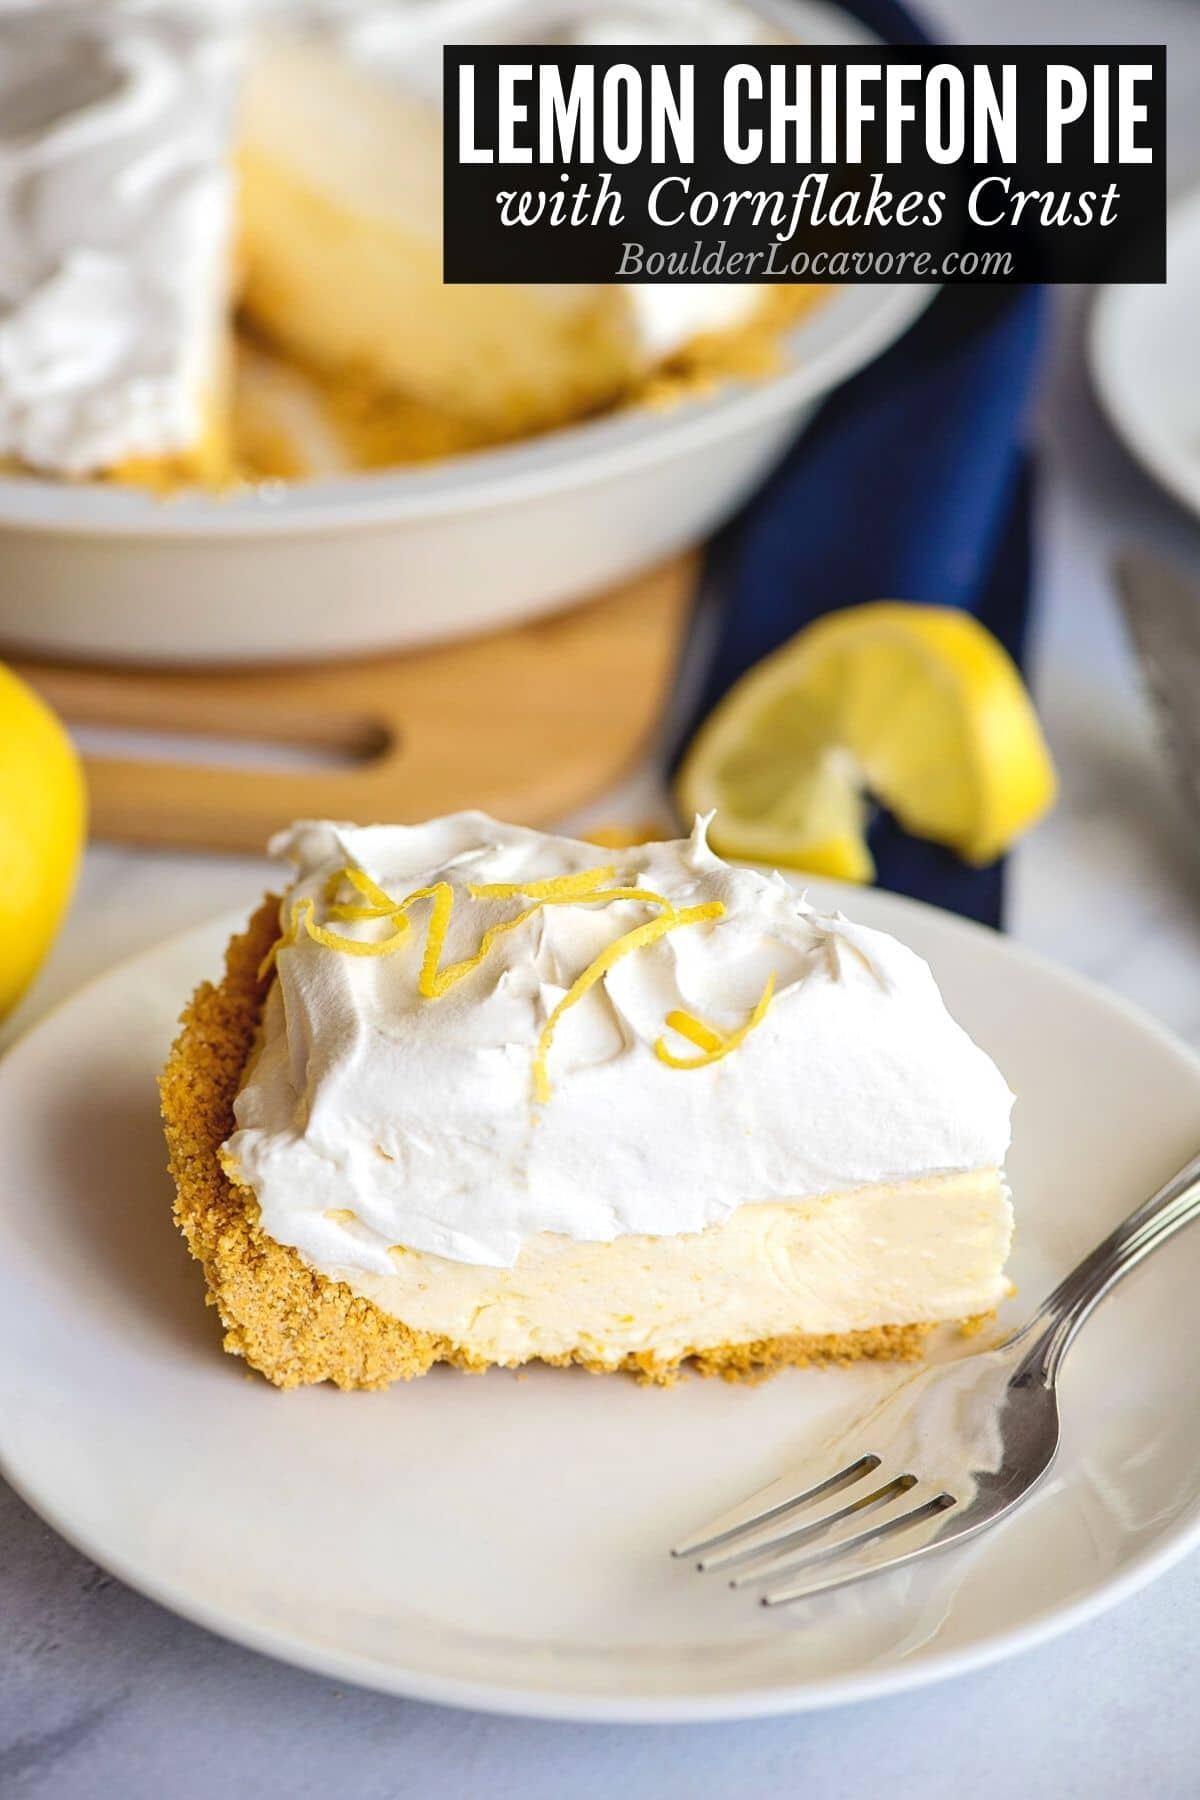 slice of Lemon Chiffon pie on plate with recipe title on image